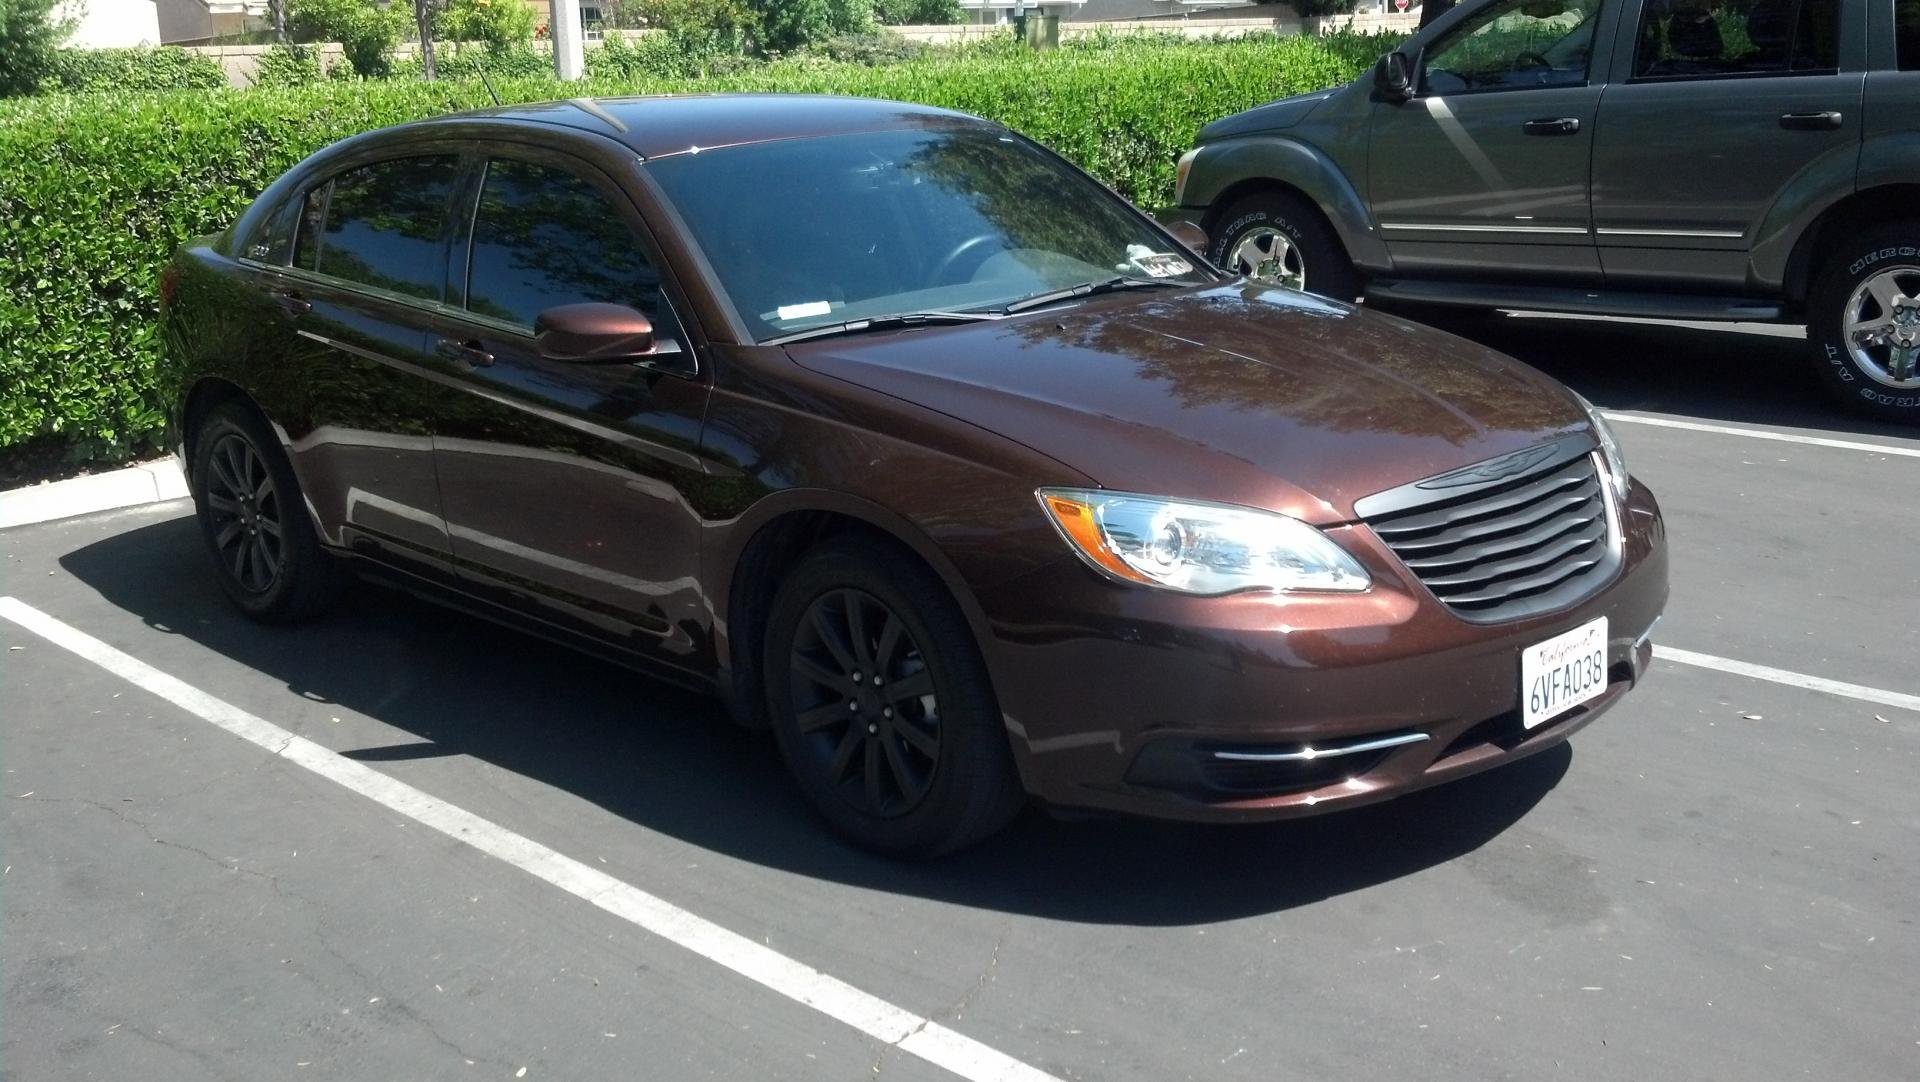 2012 Chrysler 200 Grill >> Never posted pics of my Car. From stock to mild mods.